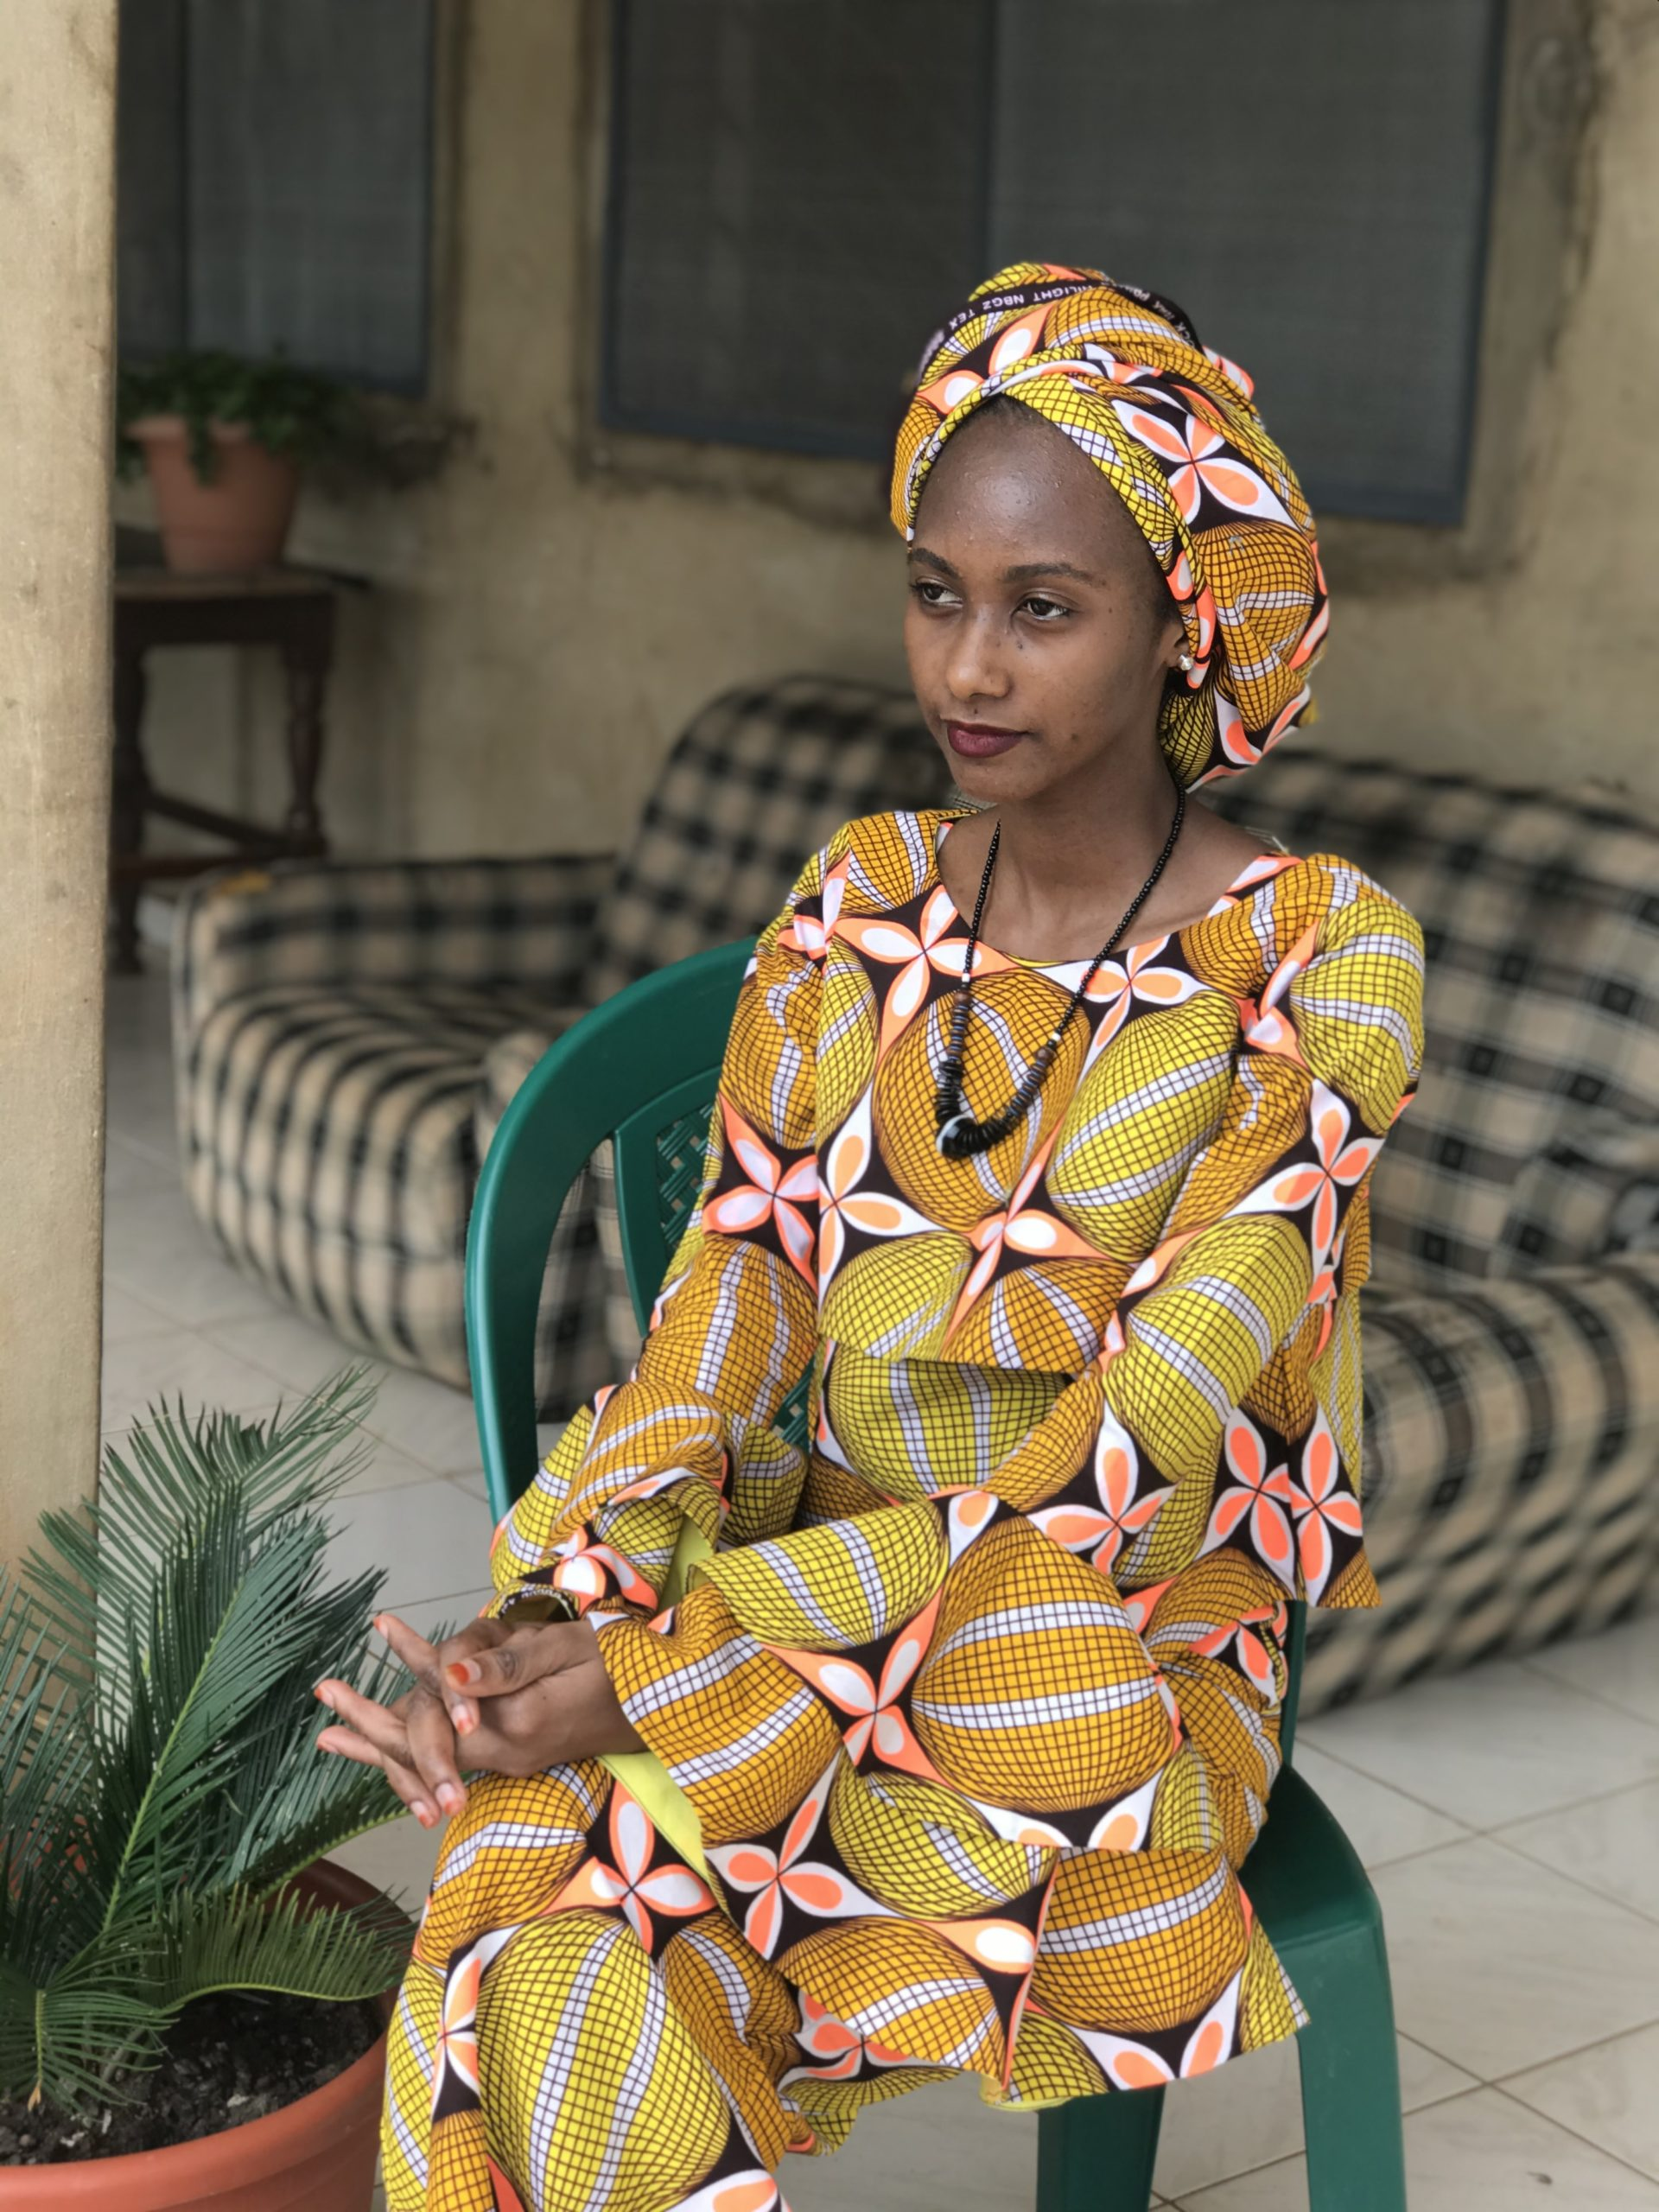 Hauwa Saleh - The Muslim Women Times